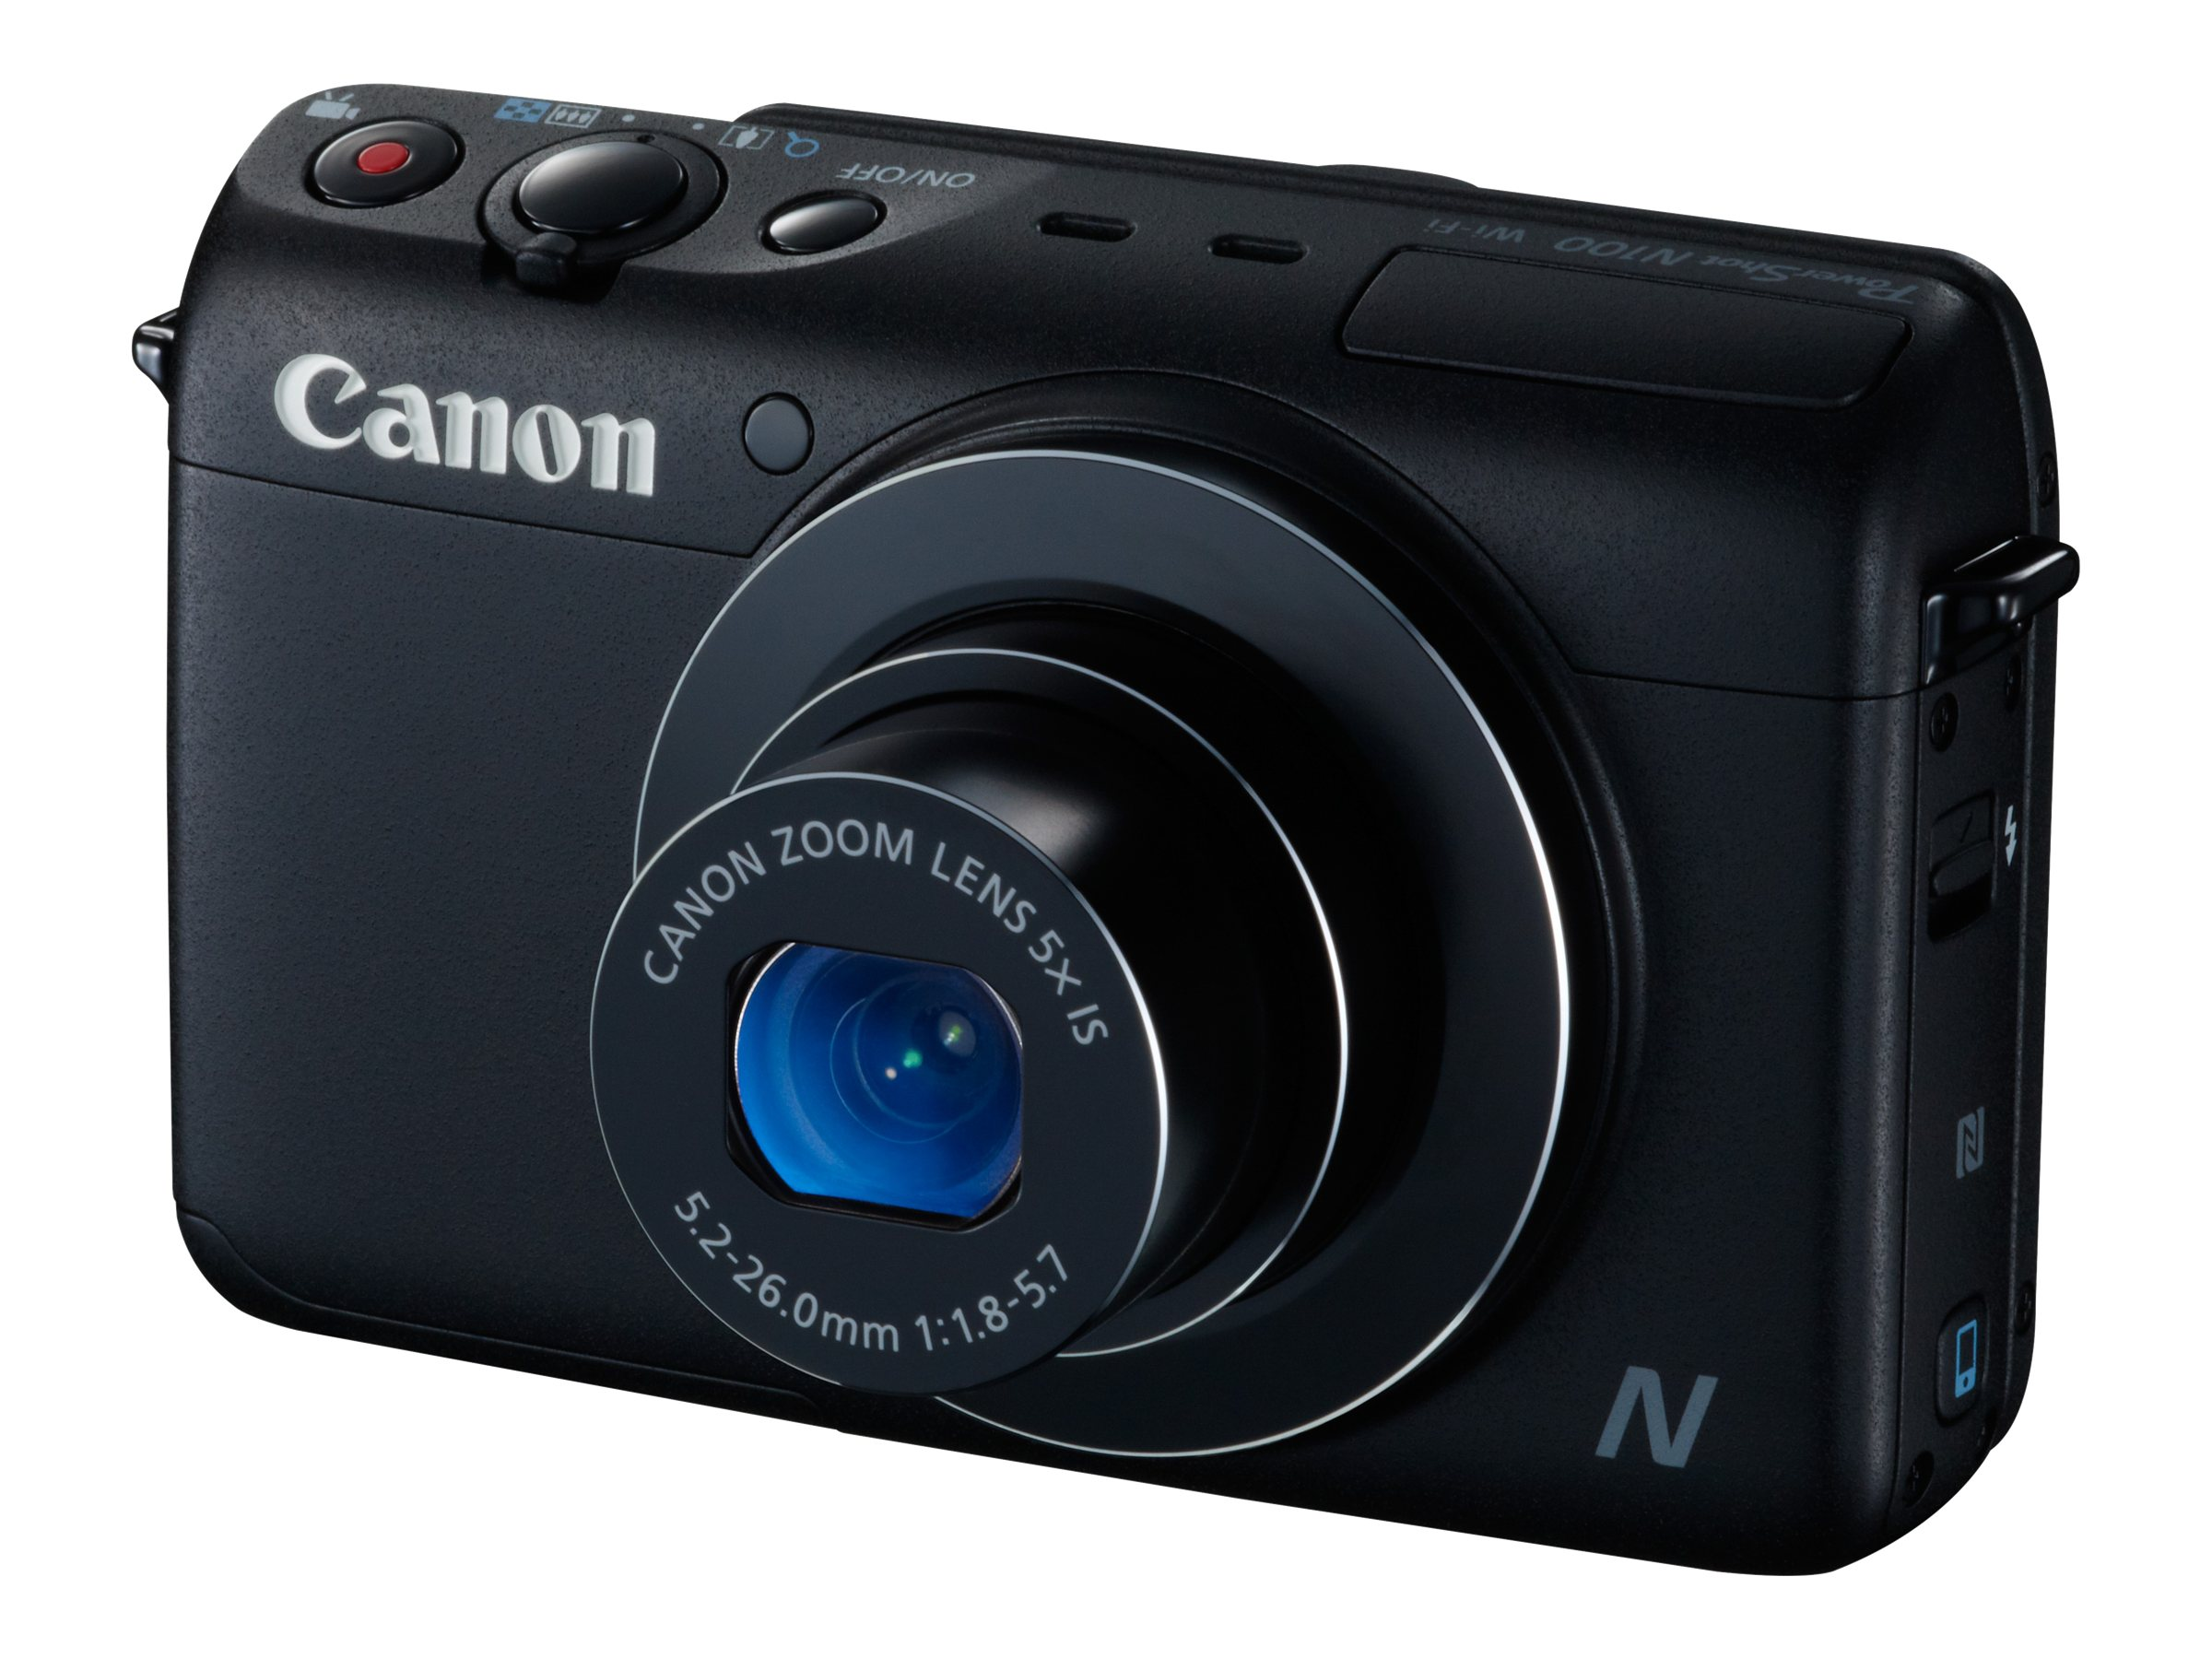 Canon PowerShot N100 Digital Camera, Black, 9168B001, 16683660, Cameras - Digital